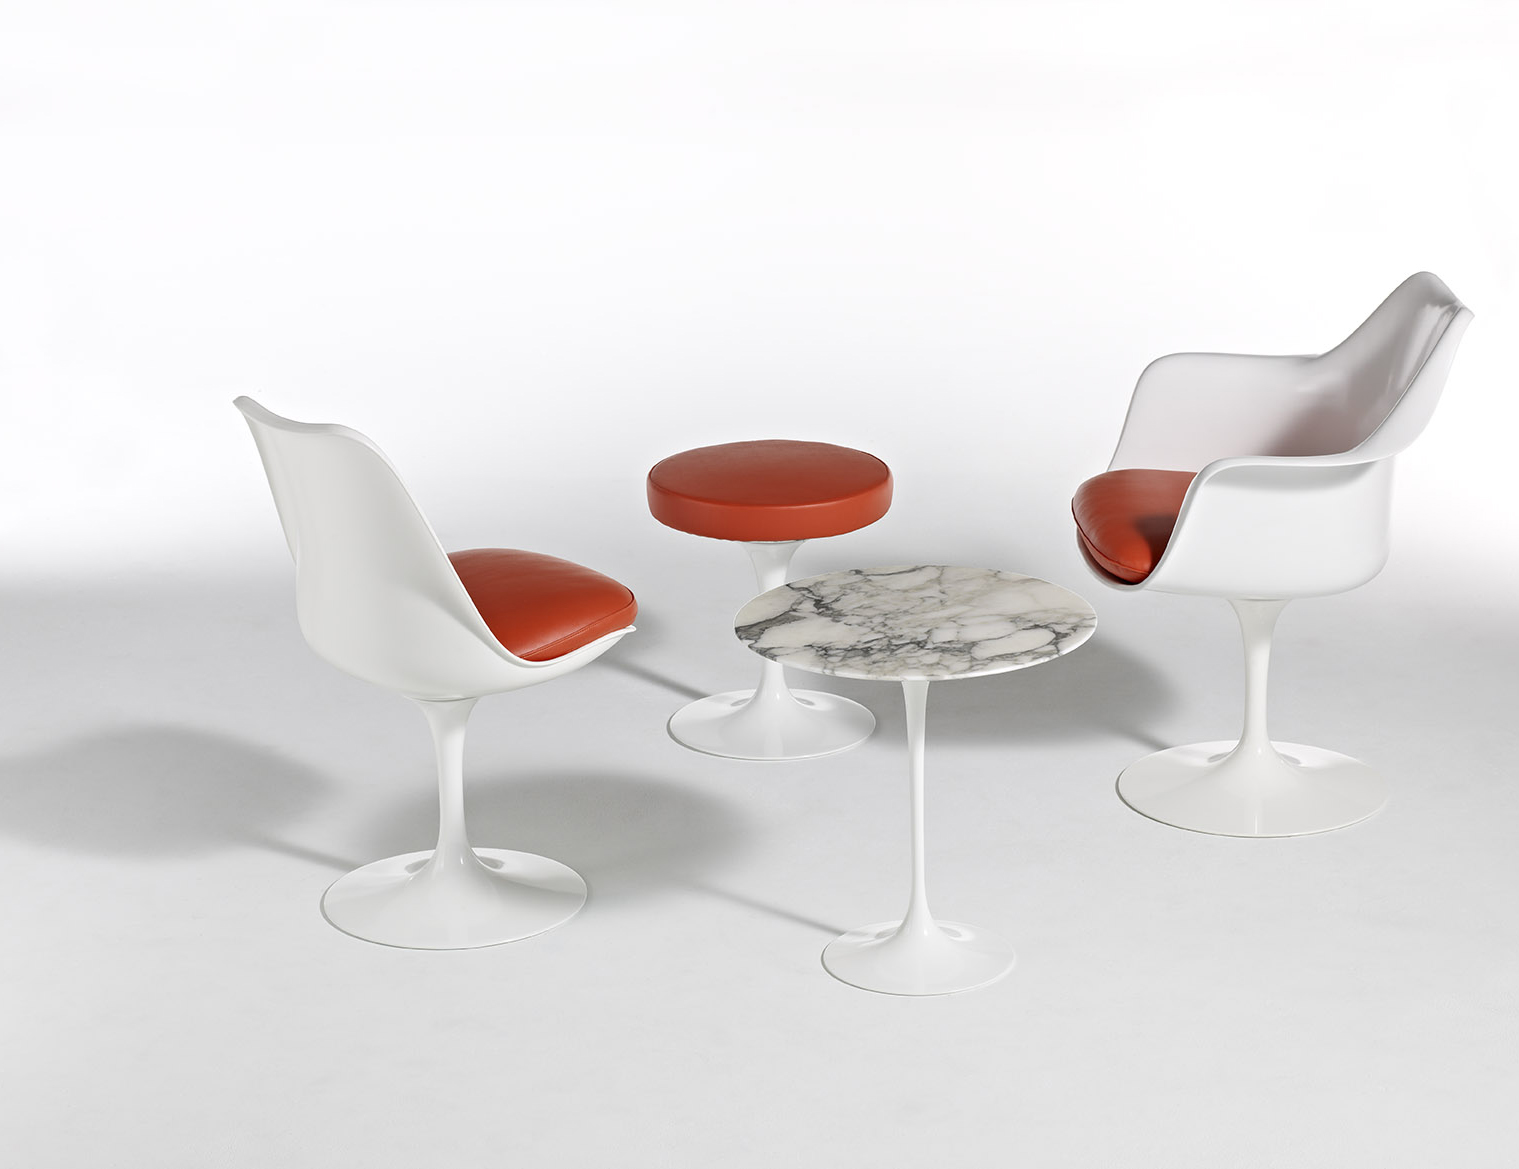 tulip table and chairs nz chair cover sash hire essex stool knoll eero saarinen pedestal collection armchair armless side